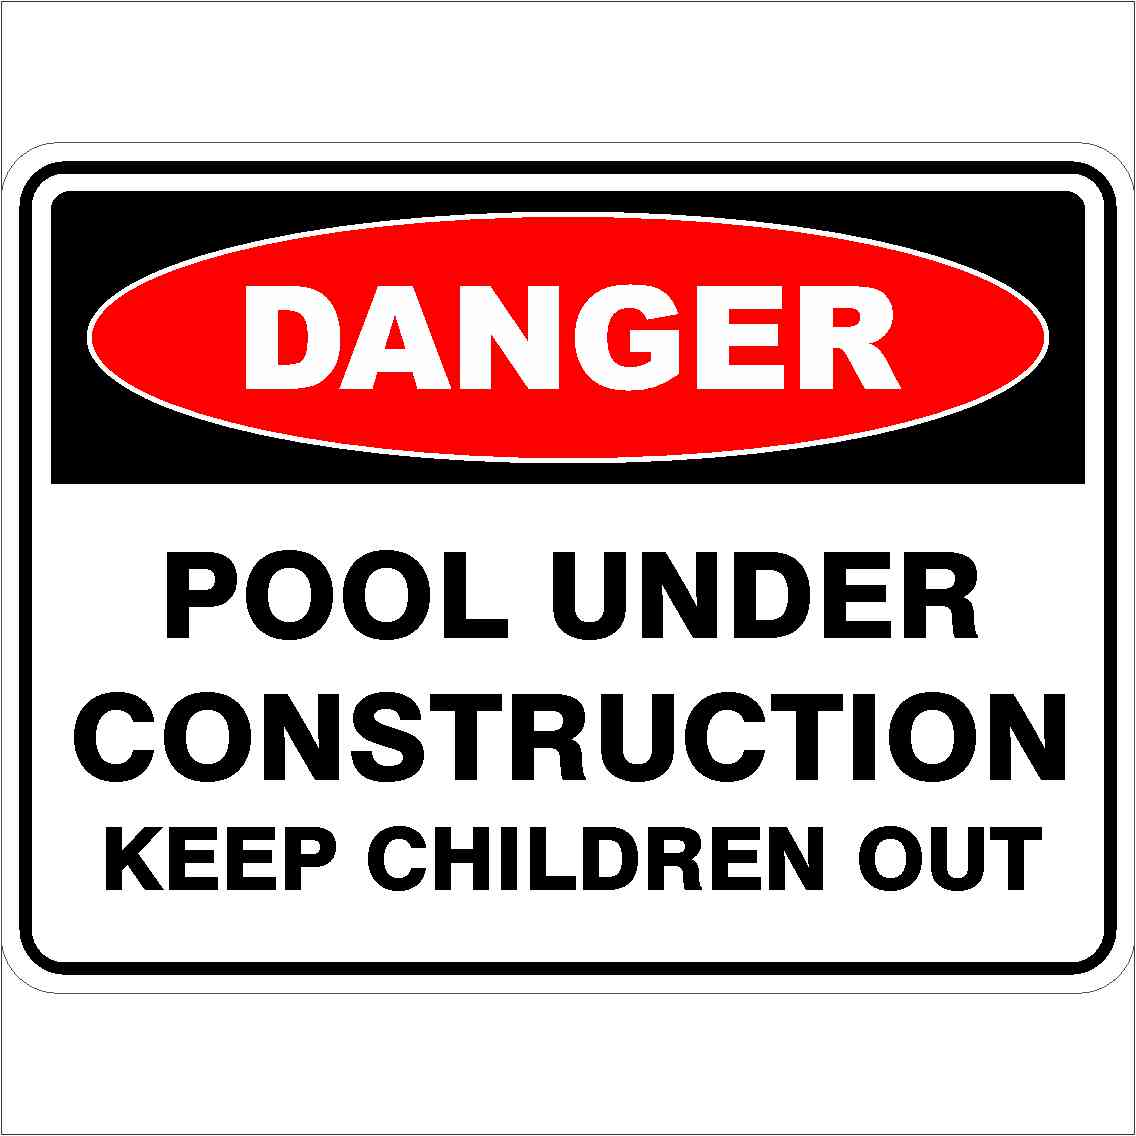 Construction Site Signs POOL UNDER CONSTRUCTION KEEP CHILDREN OUT